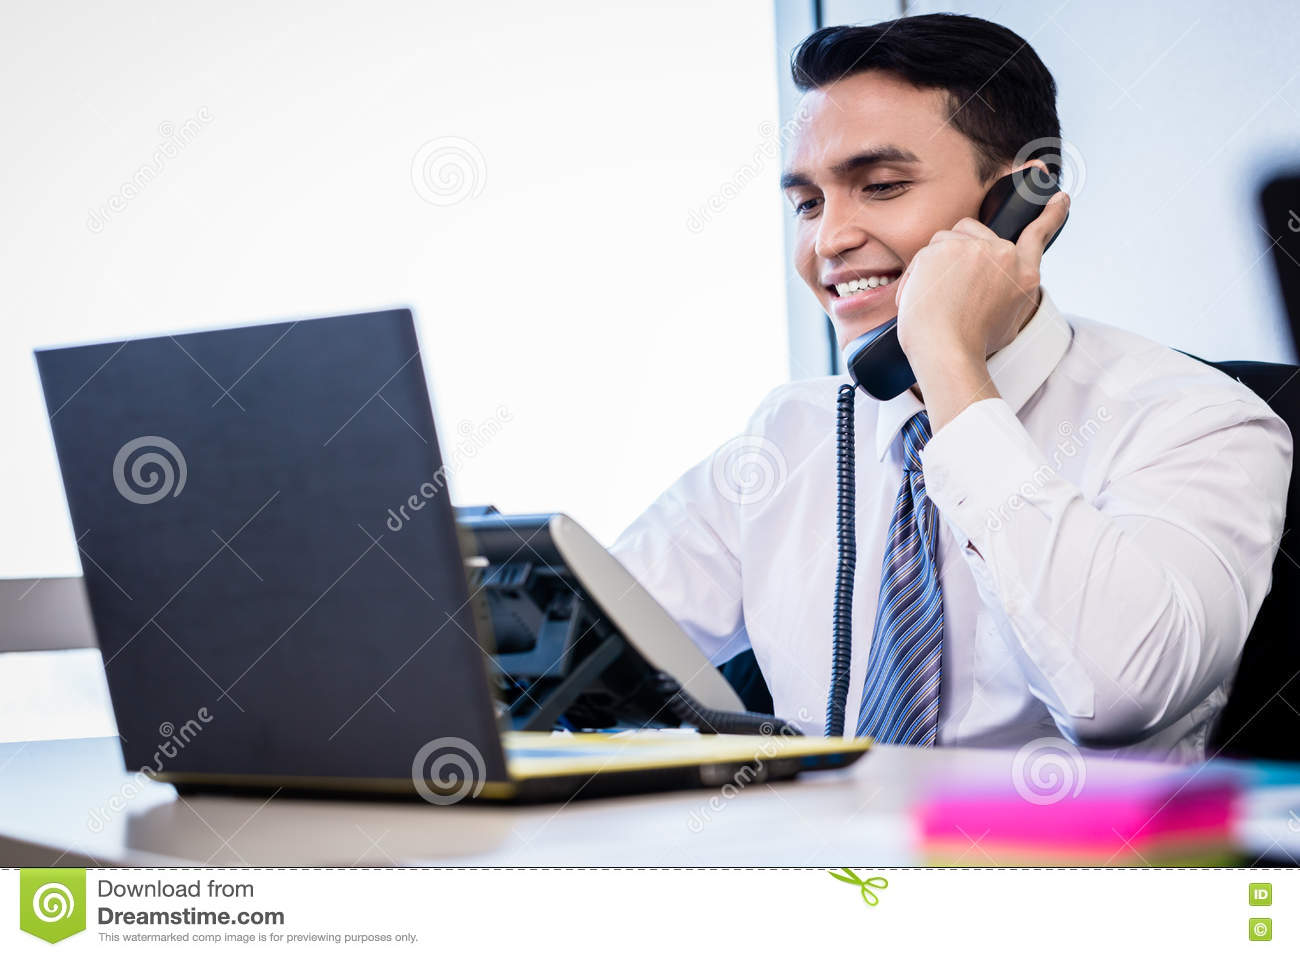 Salesman in office making phone call